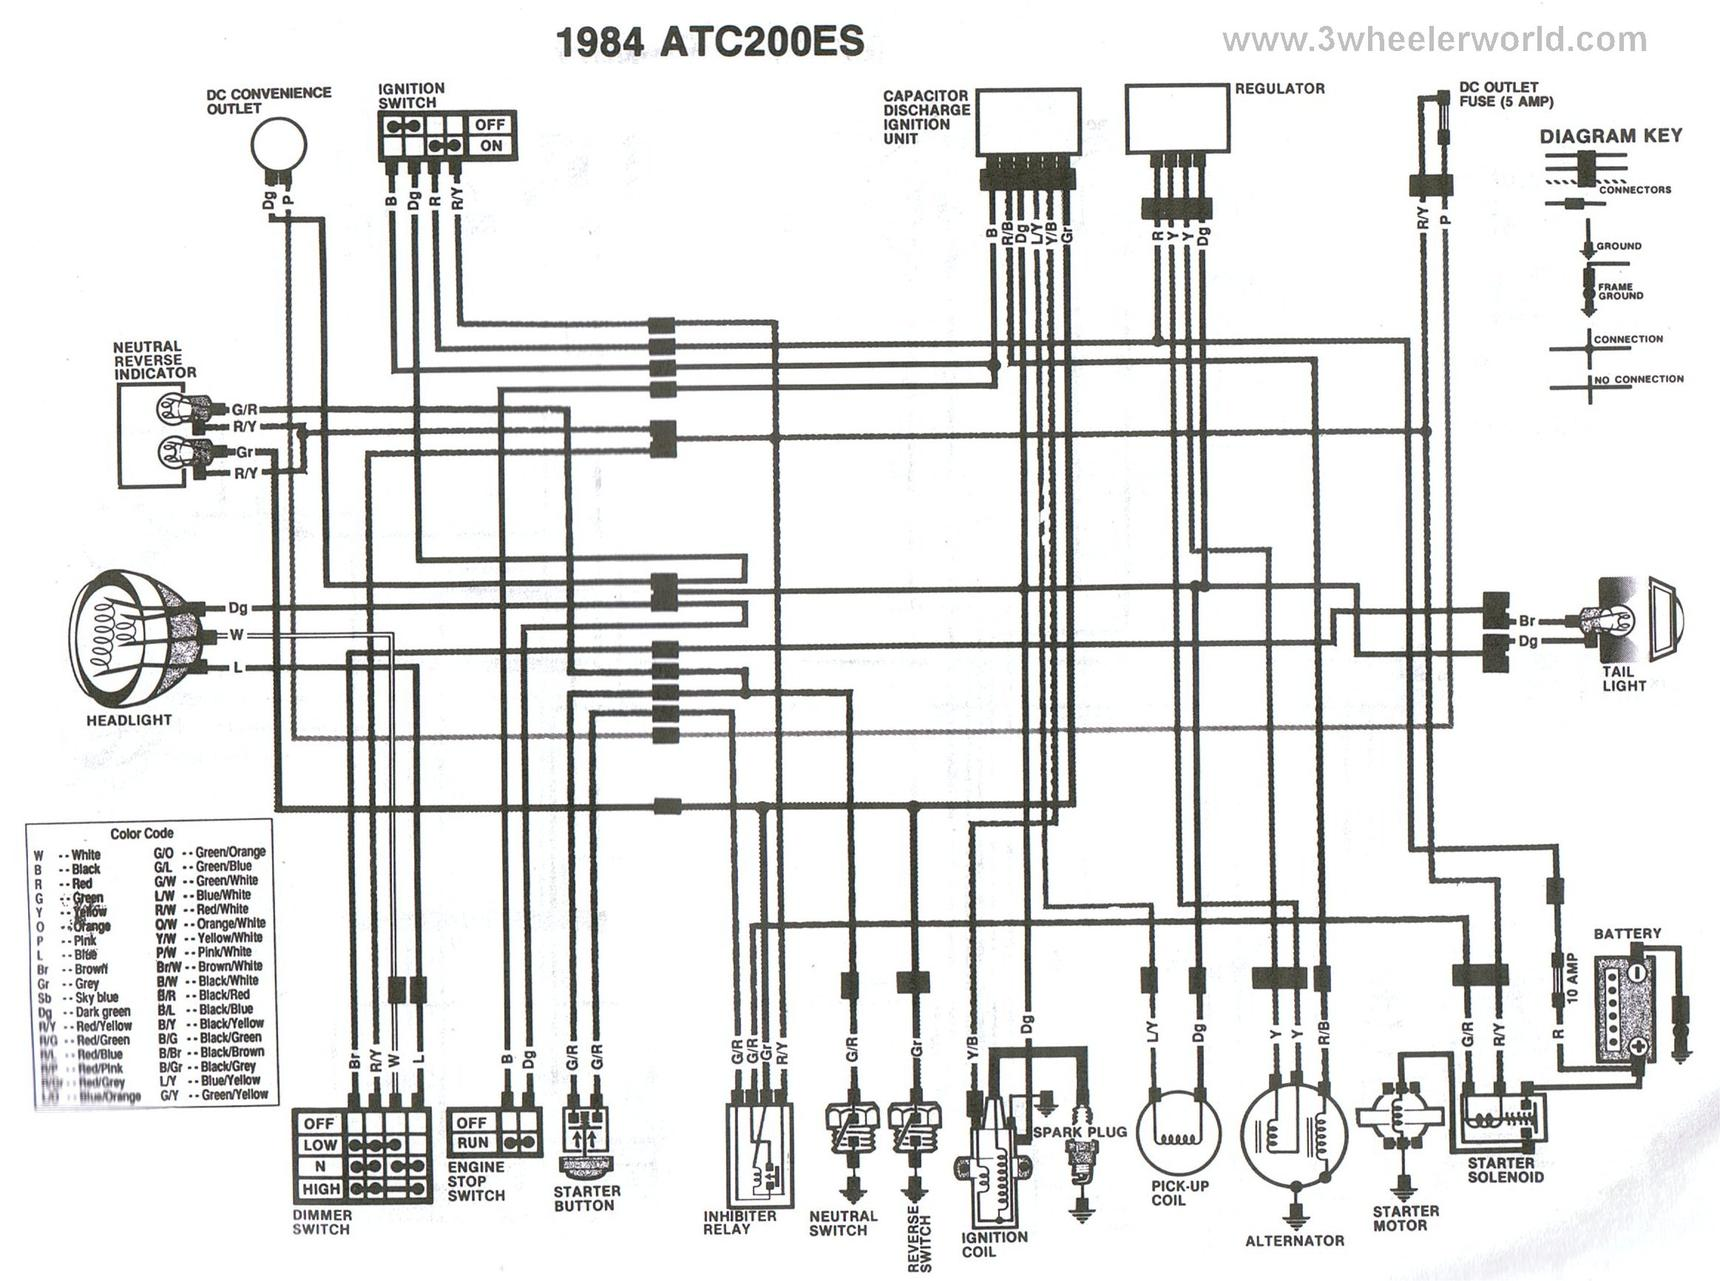 3WHeeLeR WoRLD - Honda ATC wiring diagrams